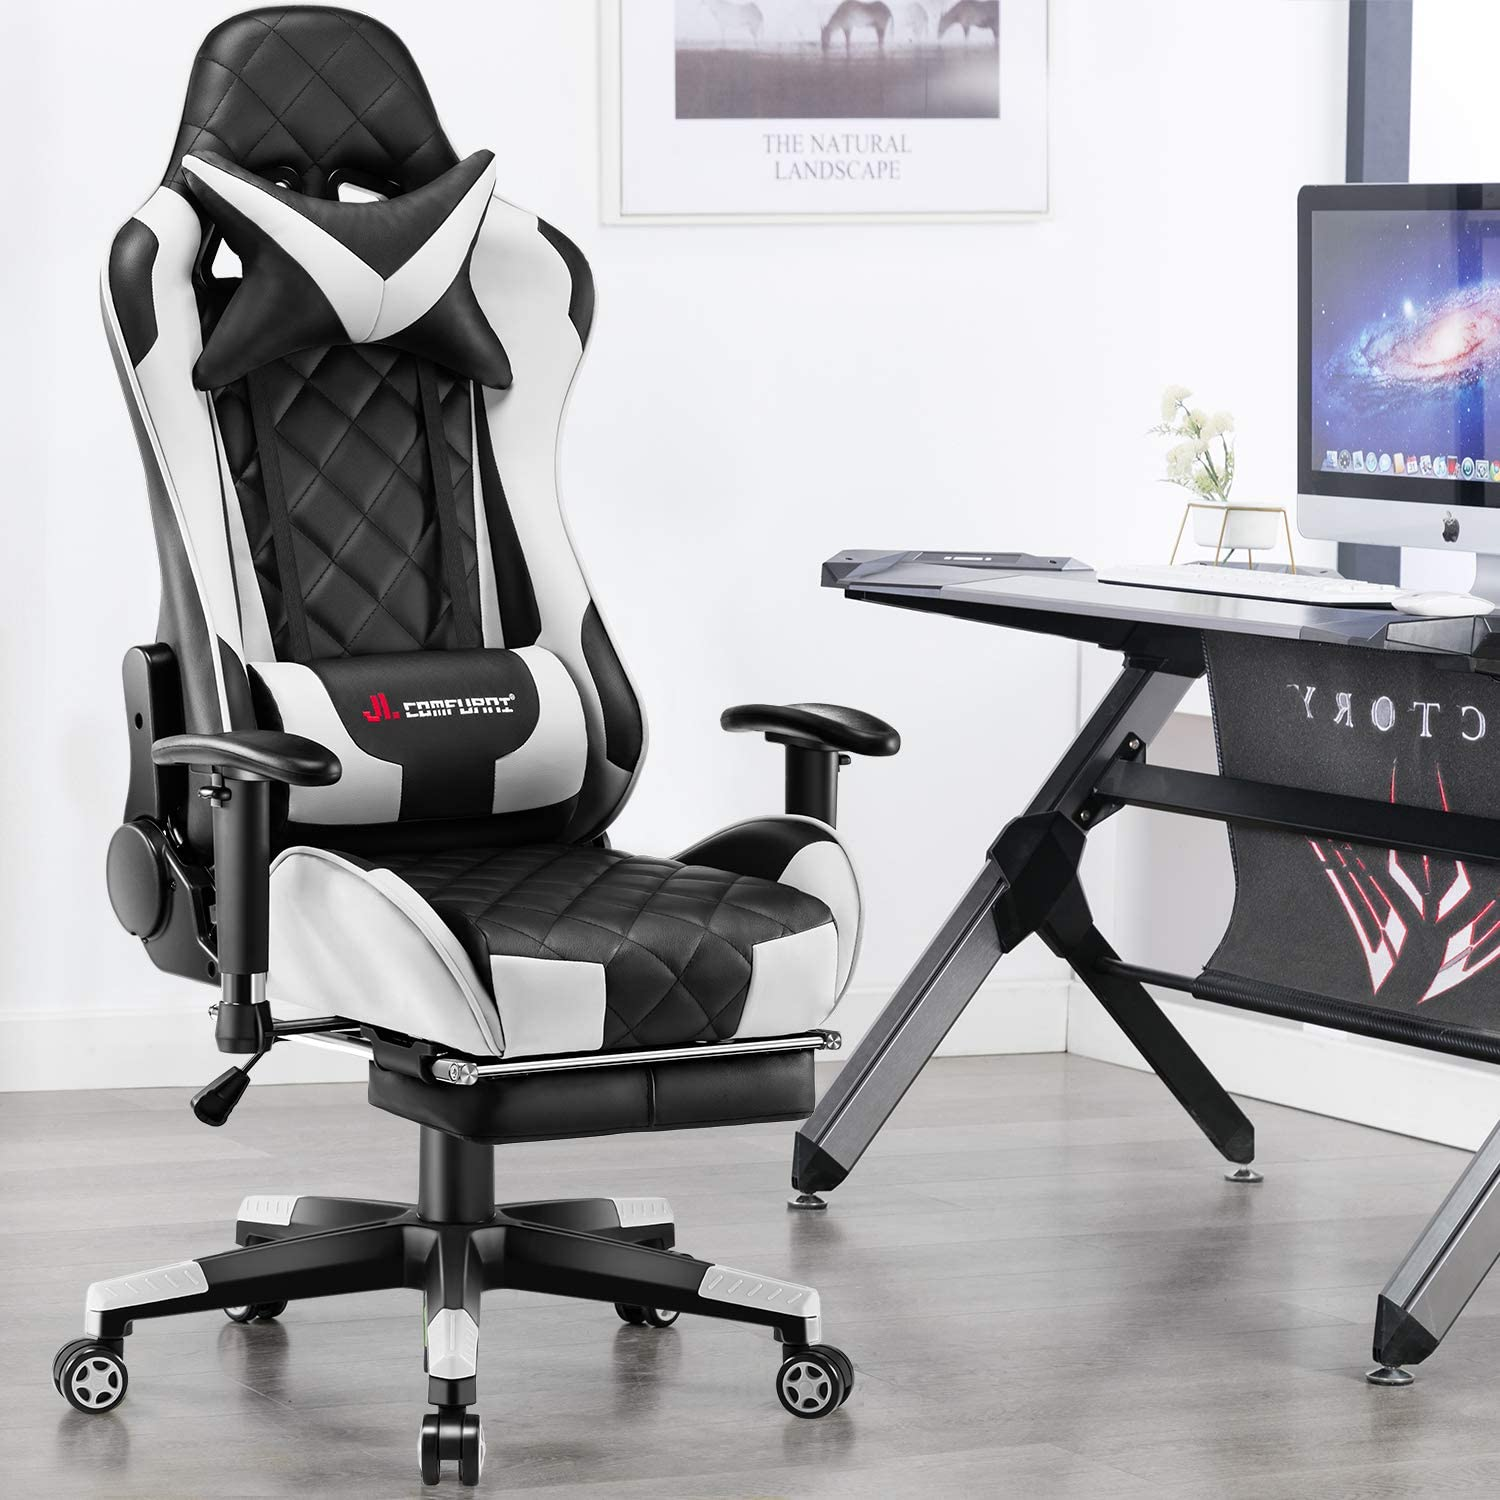 JL Comfurni Gaming Chair Racing Computer Chair Office Desk Chair High-Back Gaming Recliner with Footrest Ergonomic Video Chair PU Leather Swivel E-sports Chair Green